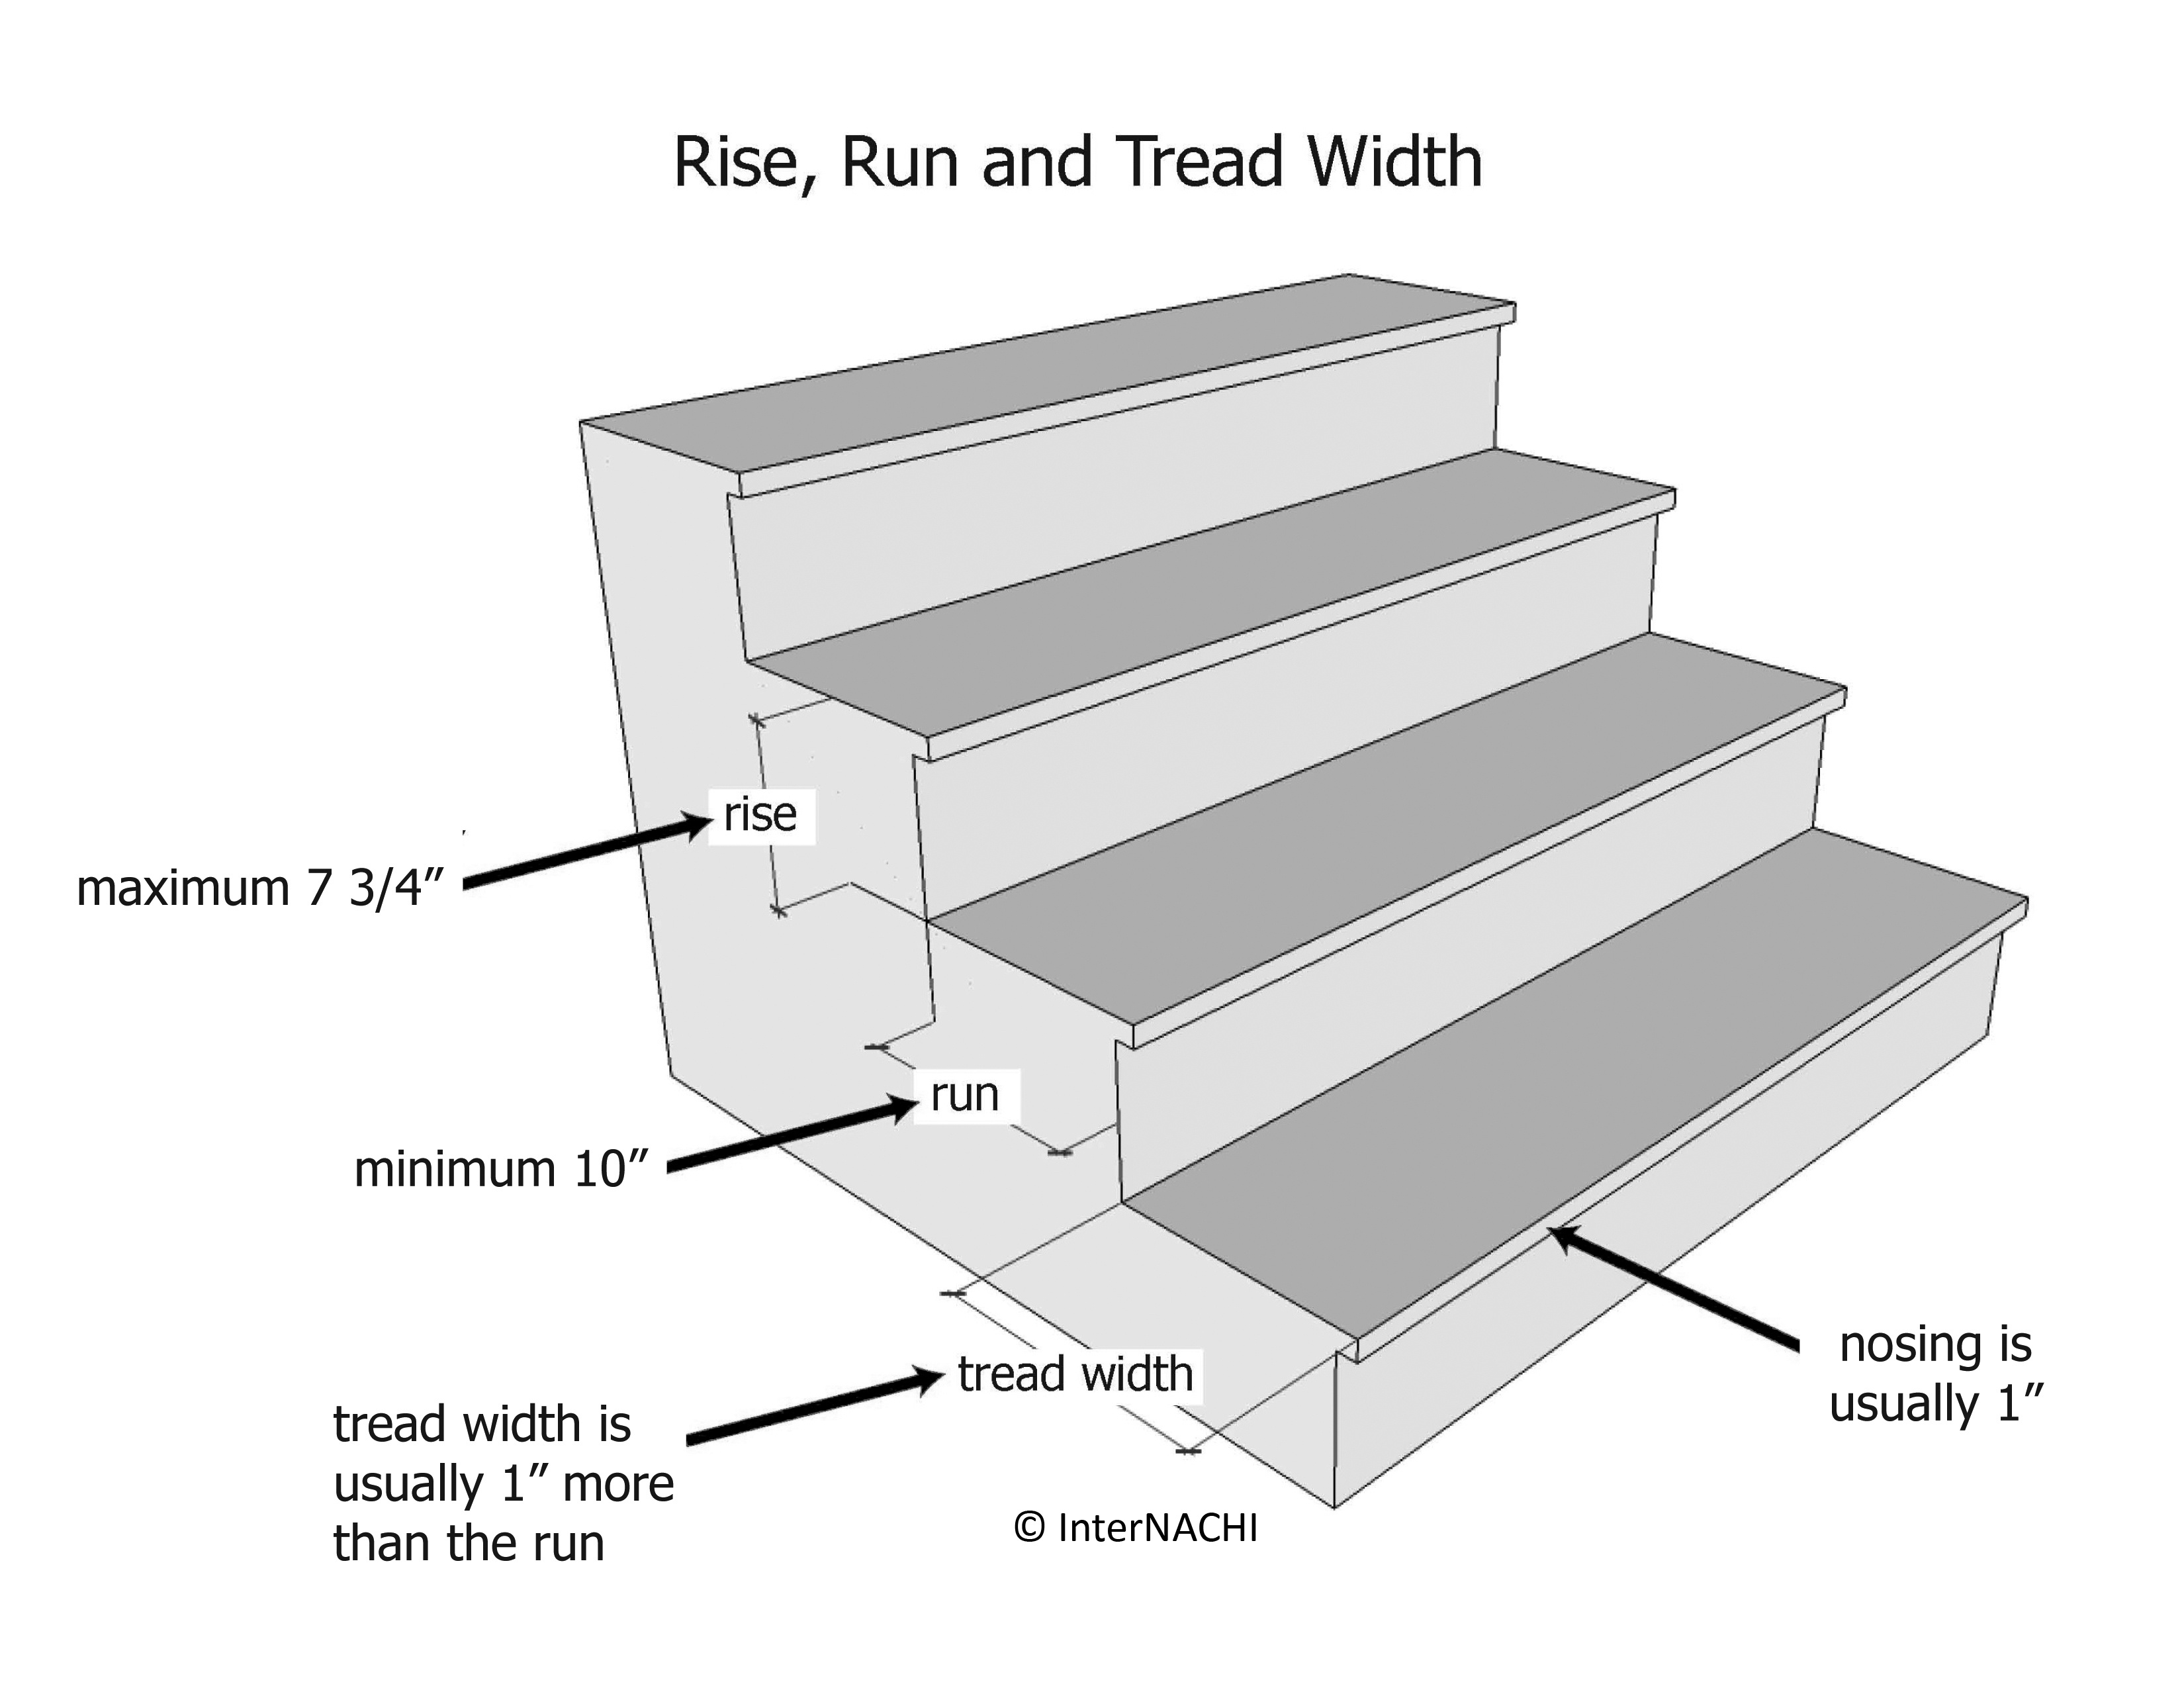 Rise, run and tread width.